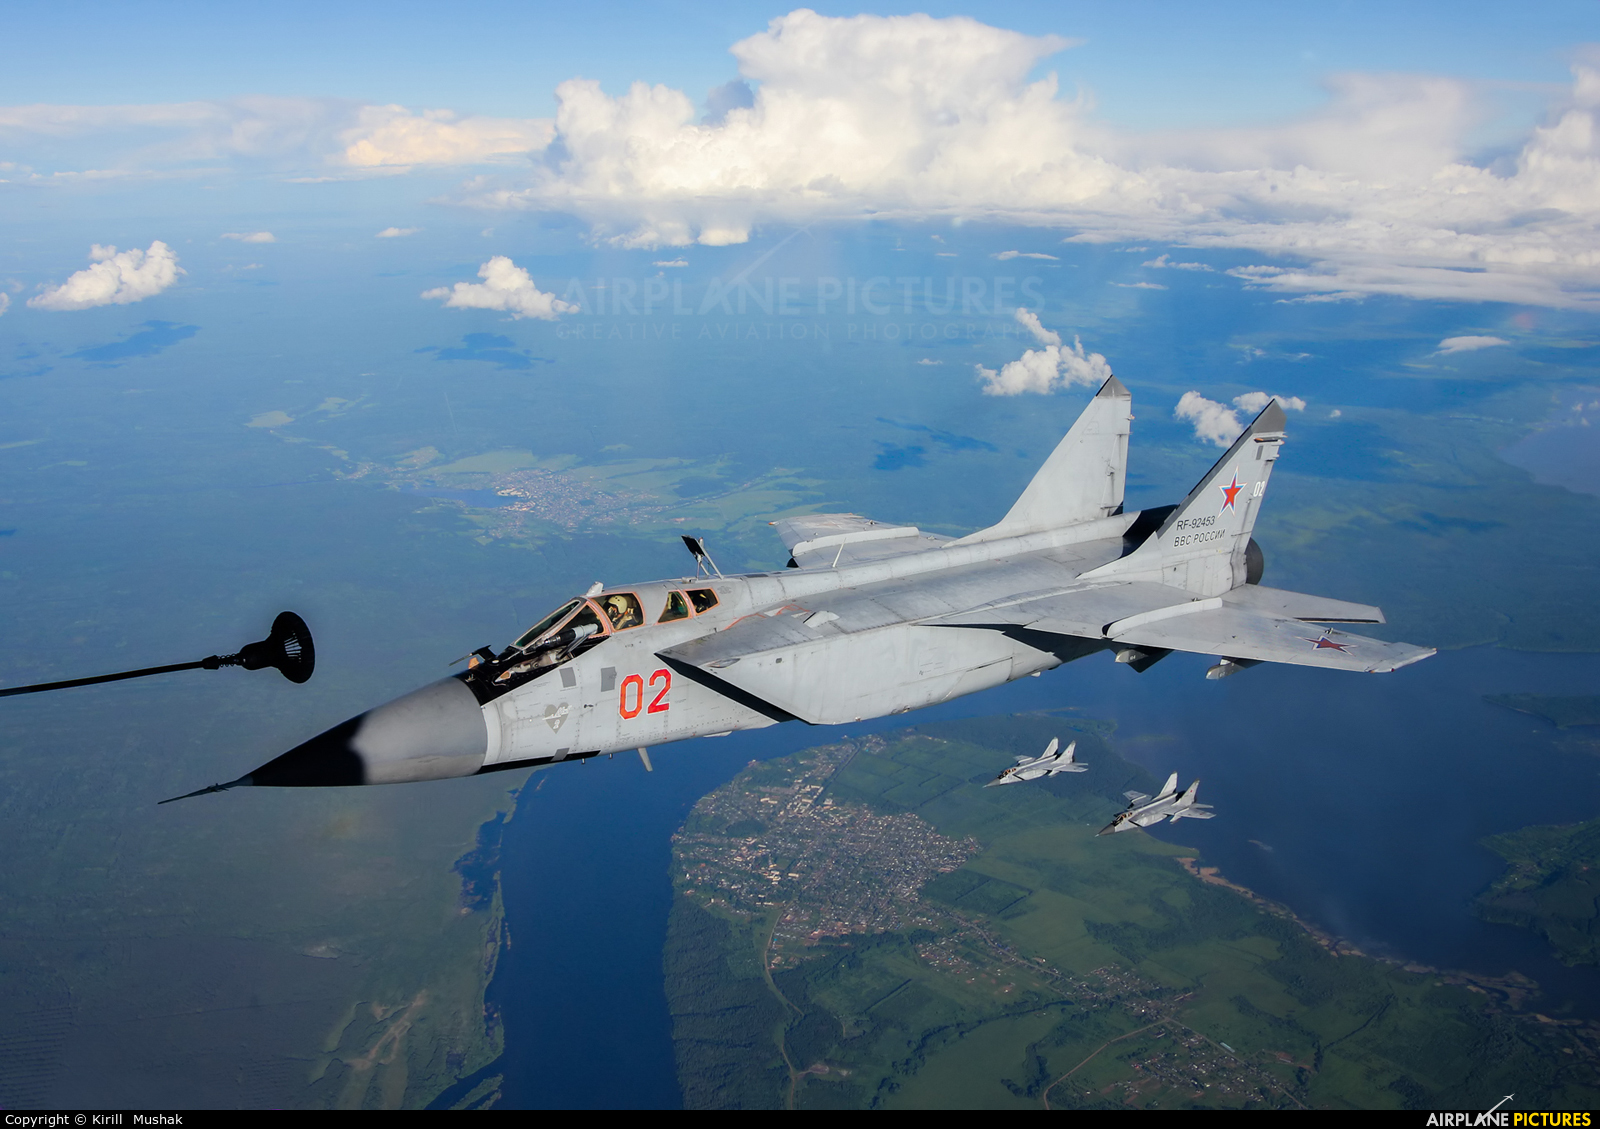 Russia - Air Force RF-92453 aircraft at In Flight - Russia